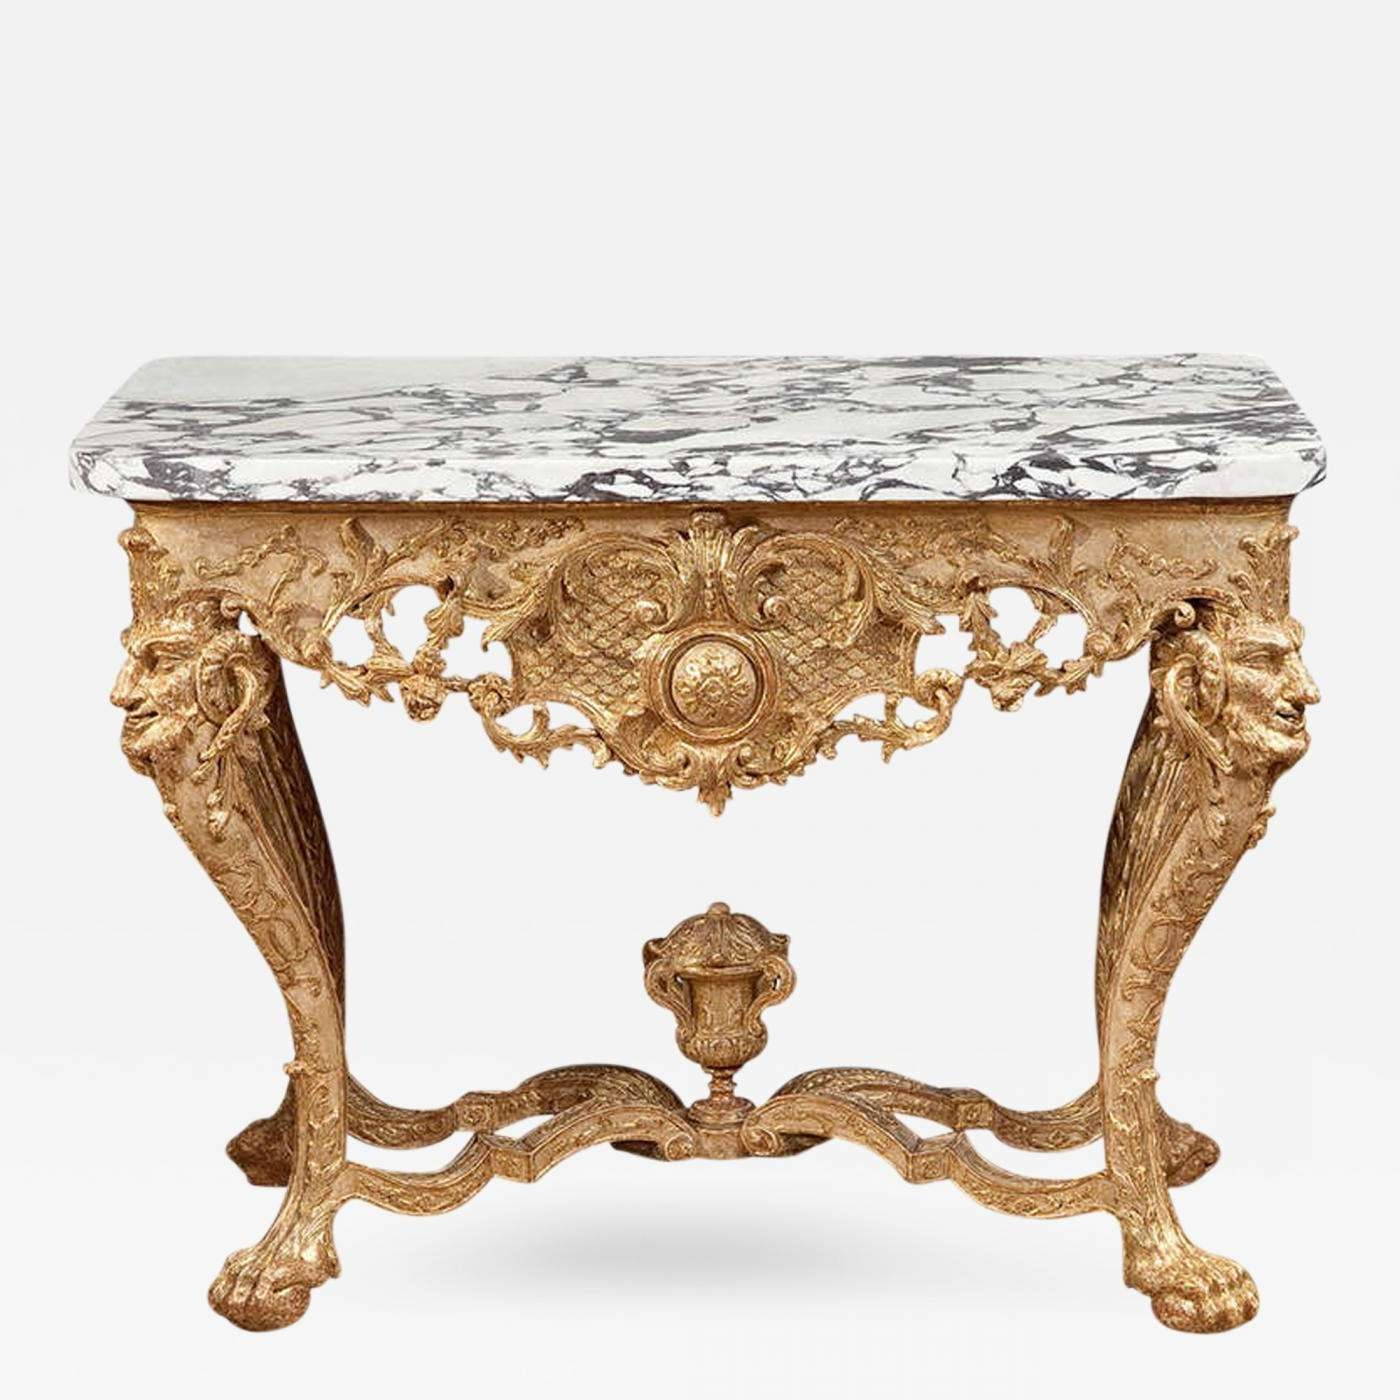 Popular Baroque Coffee Tables Inside Northern European Baroque Giltwood Console Table (View 13 of 20)